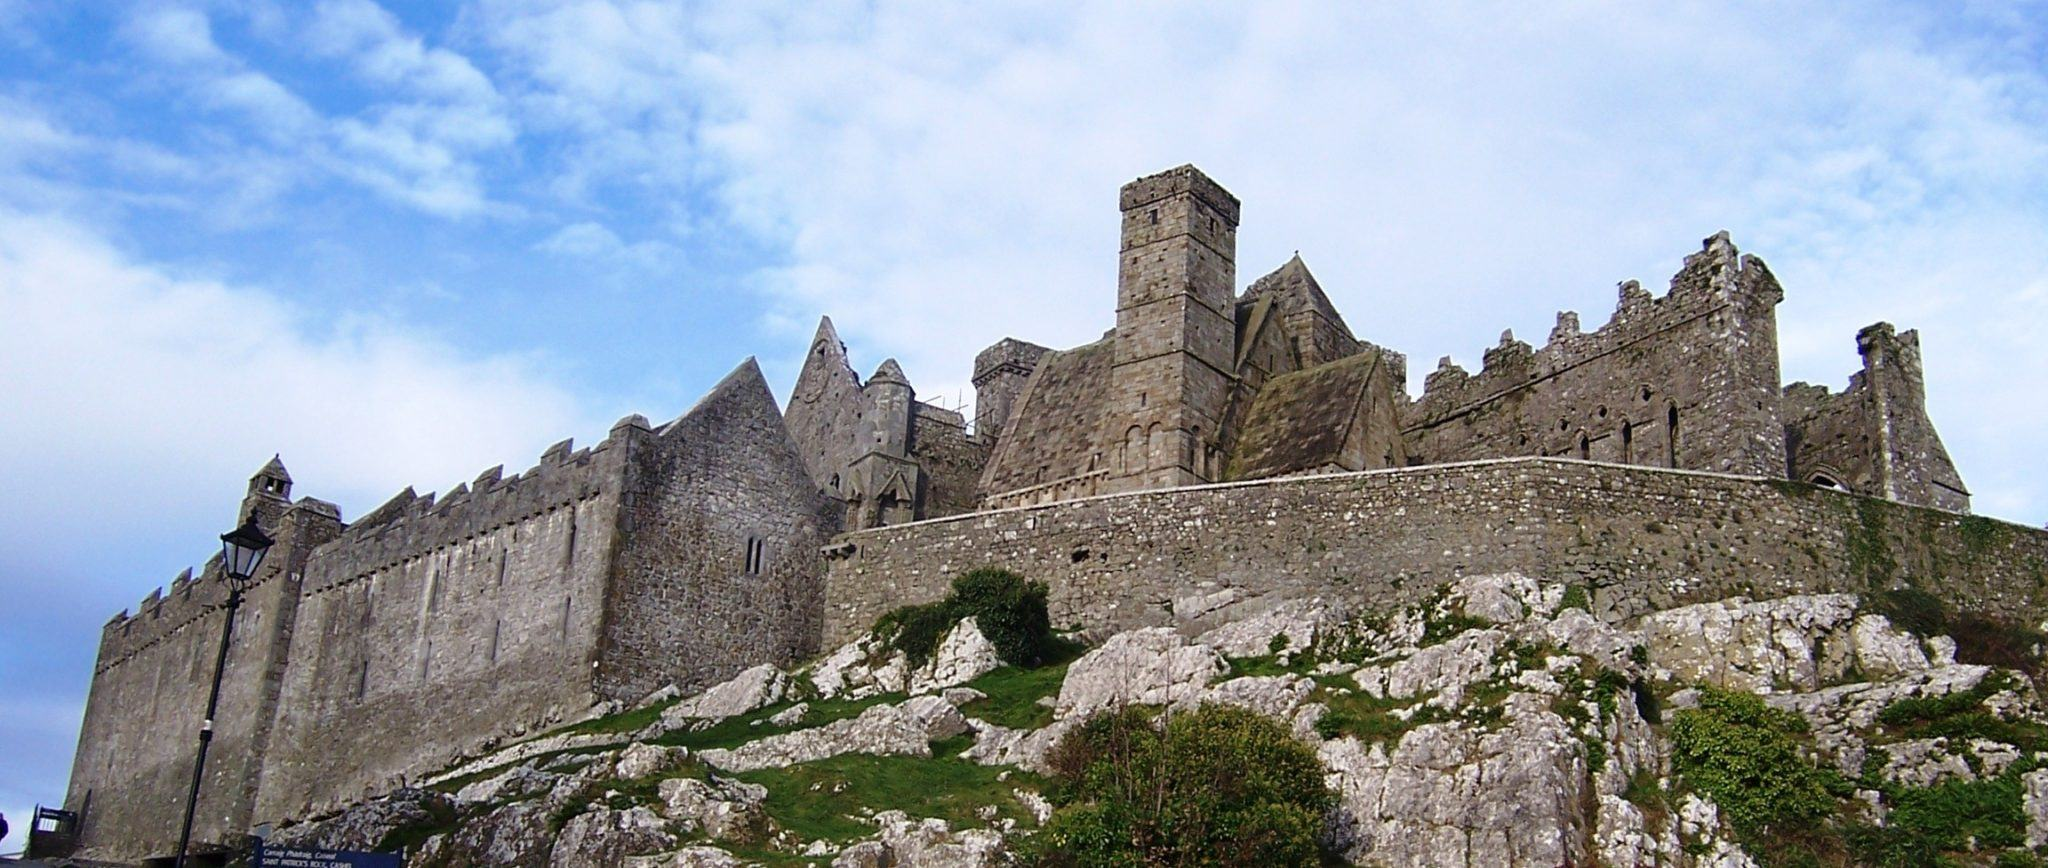 Visiting the Rock of Cashel